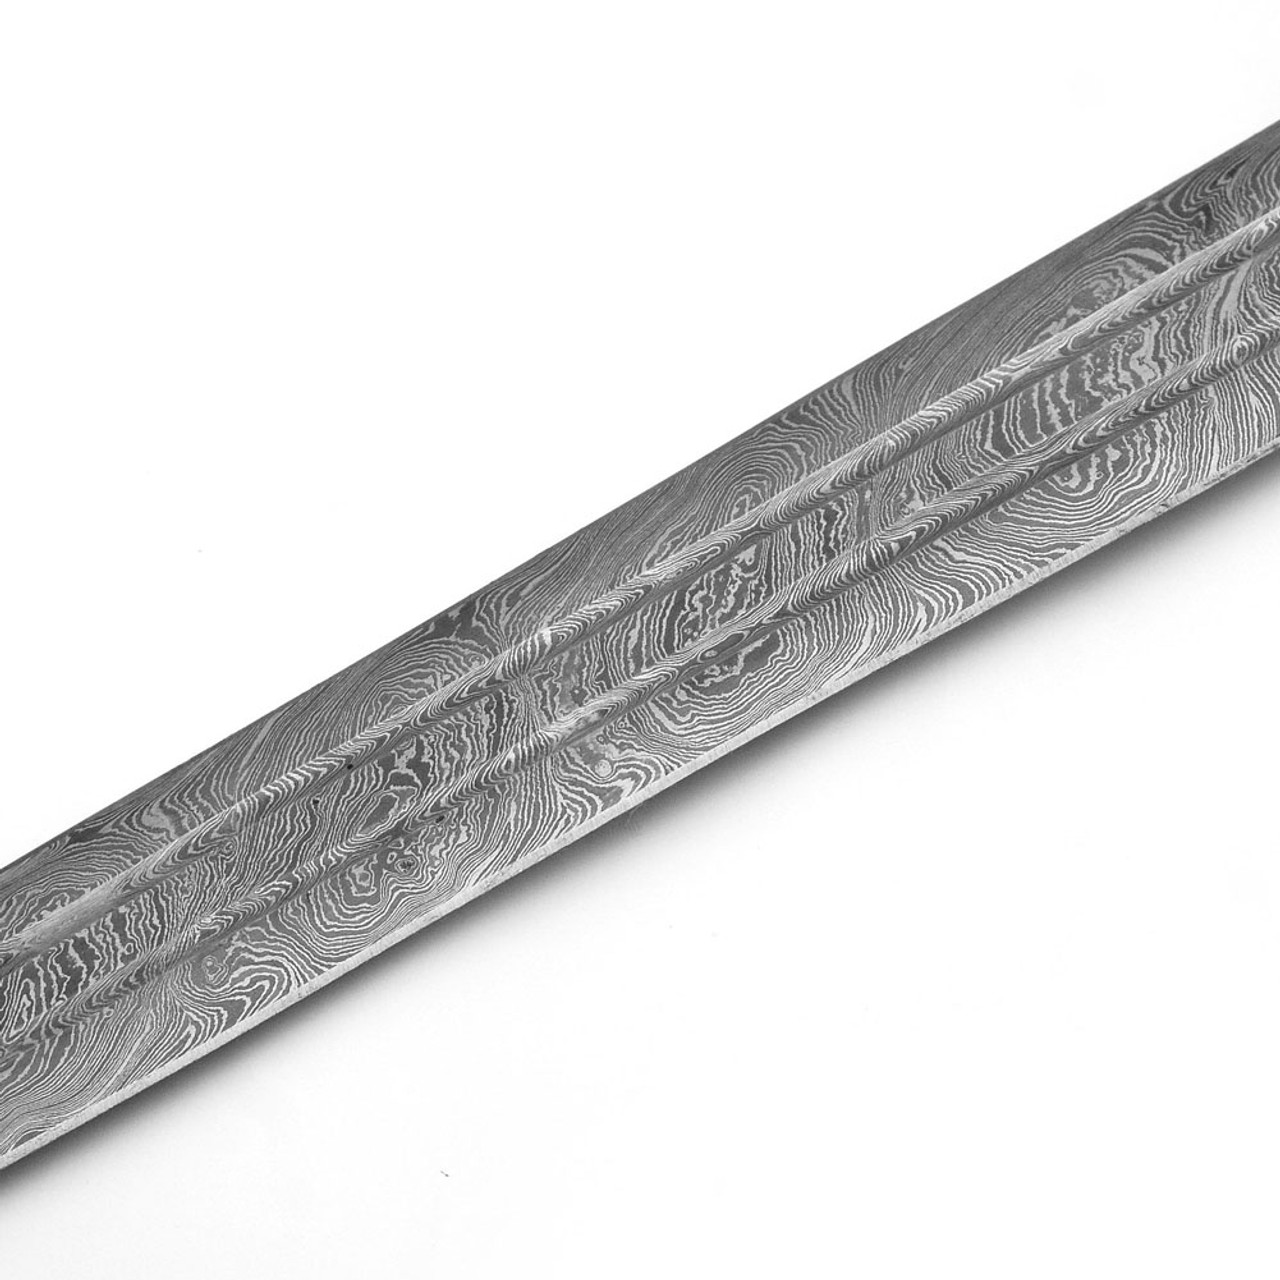 Fire Quest Knights of Templar Damascus Steel Medieval Arming Sword